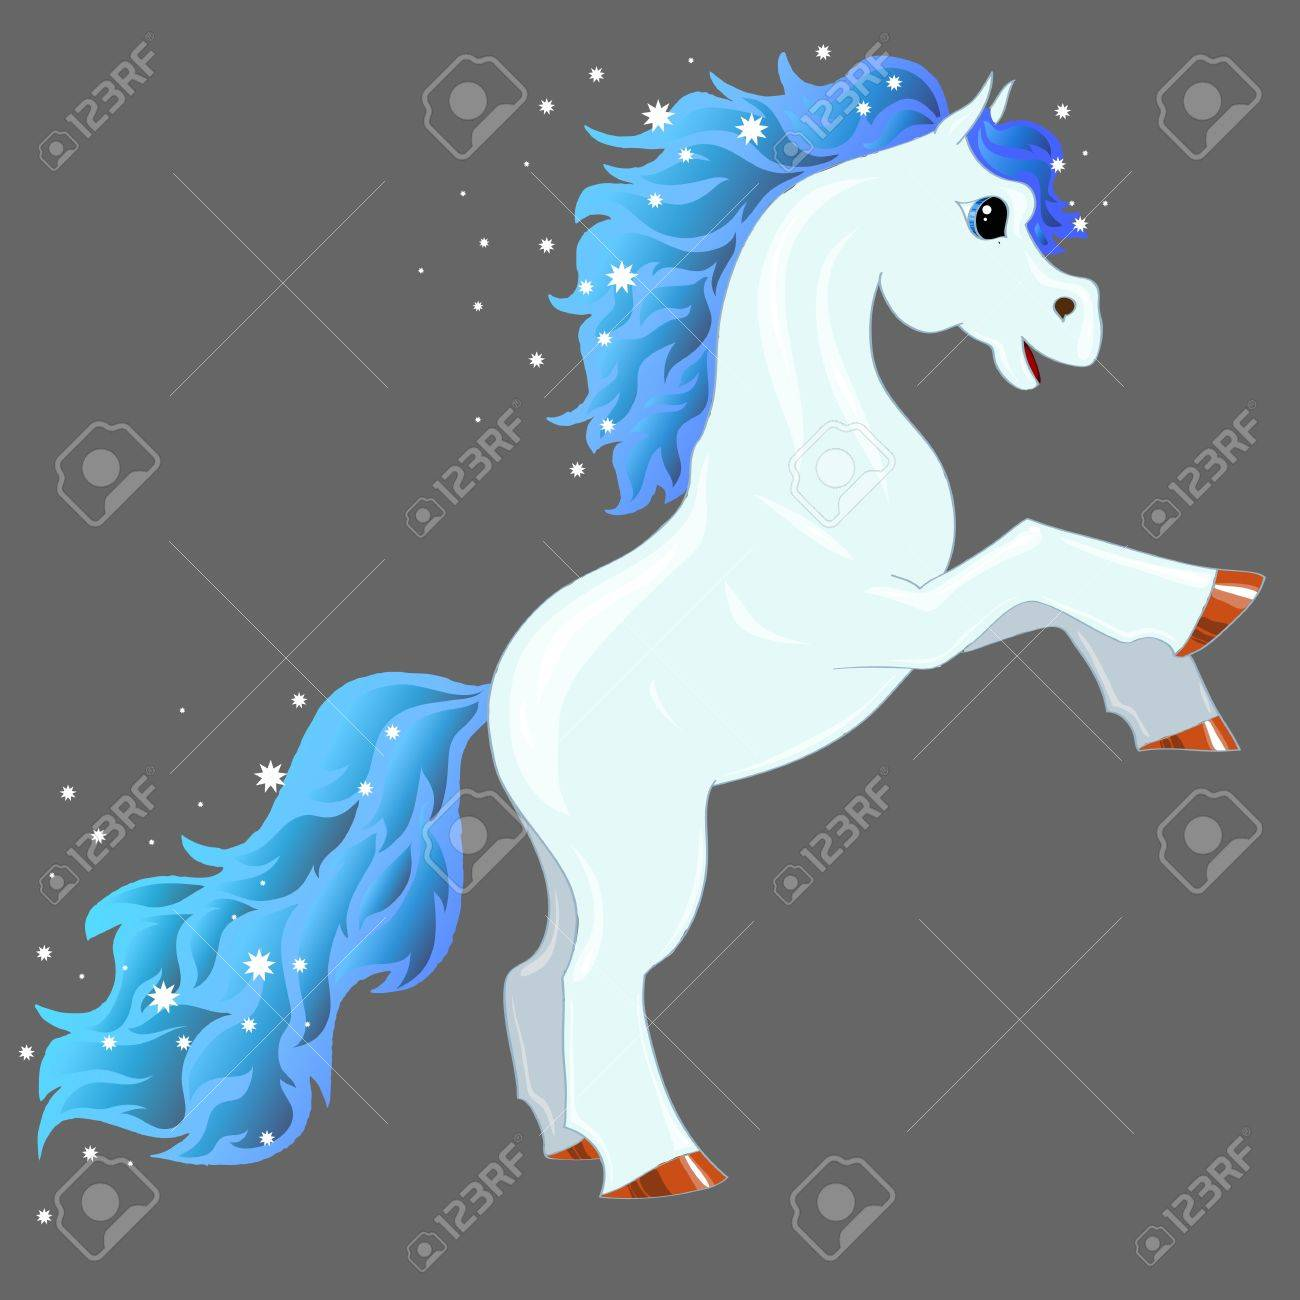 Magic Blue Horse With Shiny Mane And Tail Royalty Free Cliparts Vectors And Stock Illustration Image 21026853